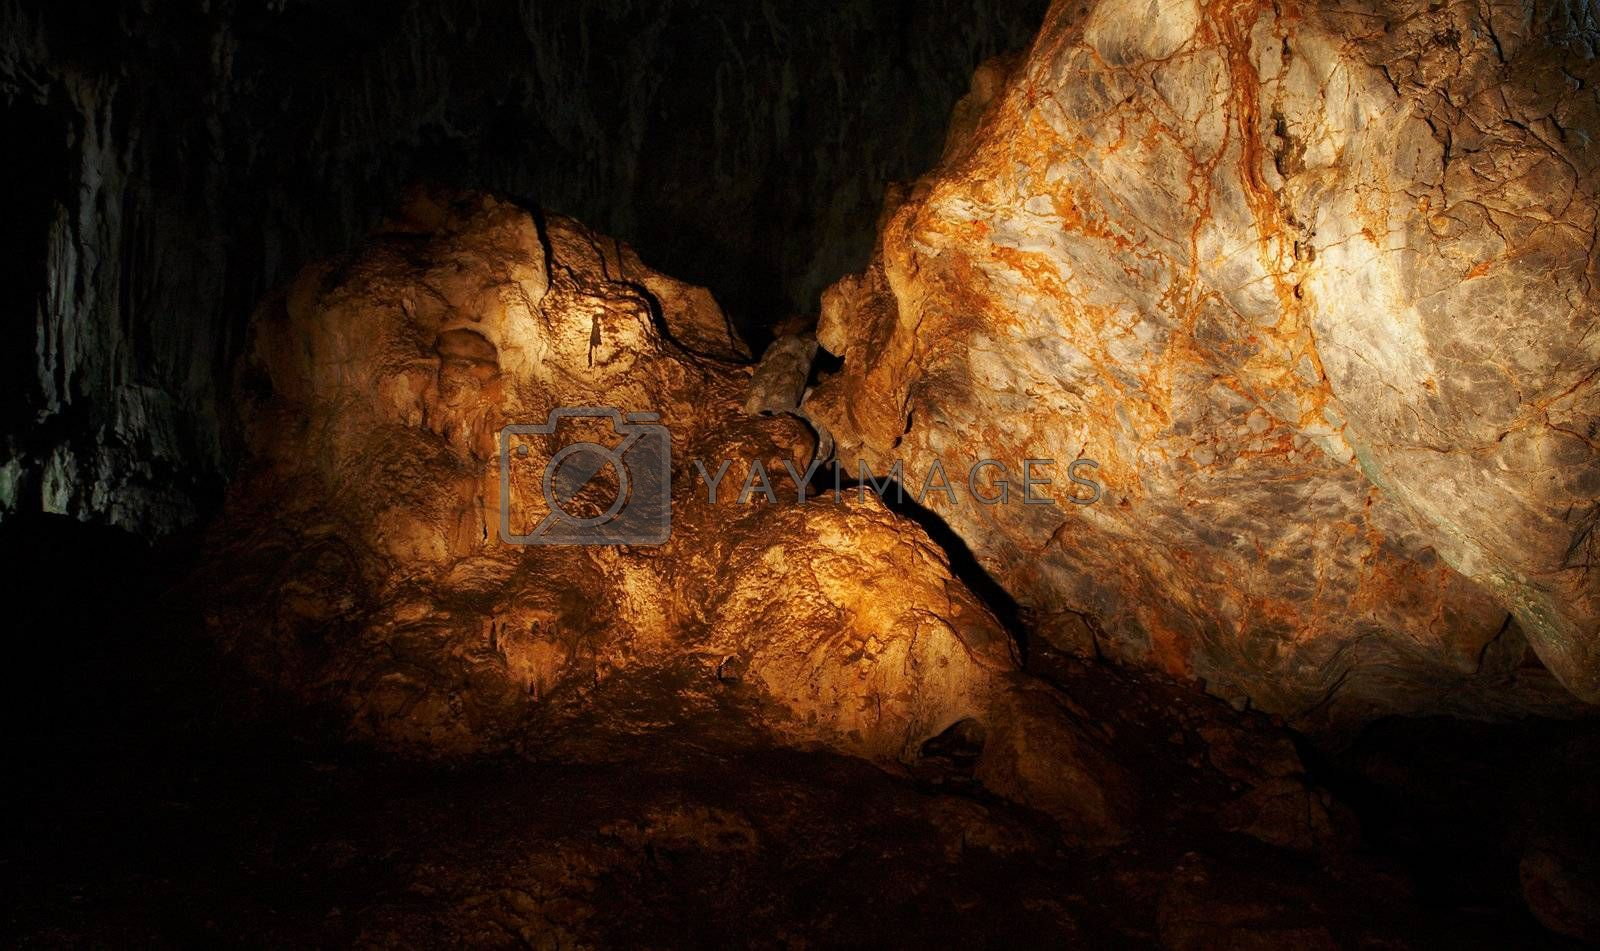 The amber rock in a cave by DeusNoxious